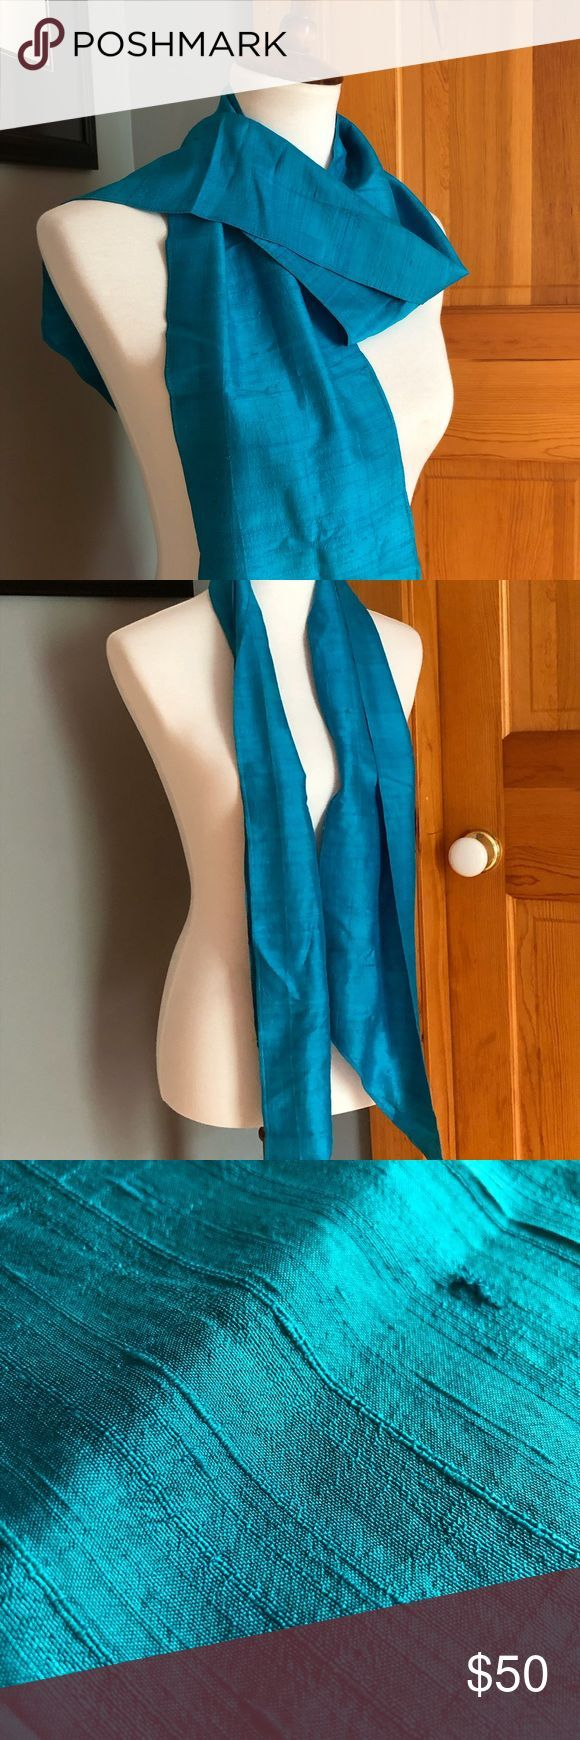 "Vintage Blue Dupioni Silk Scarf 68"" Elegant vintage 60's blue scarf with tons of the kind of texture only real Dupioni silk gives. Wonderful aroun"